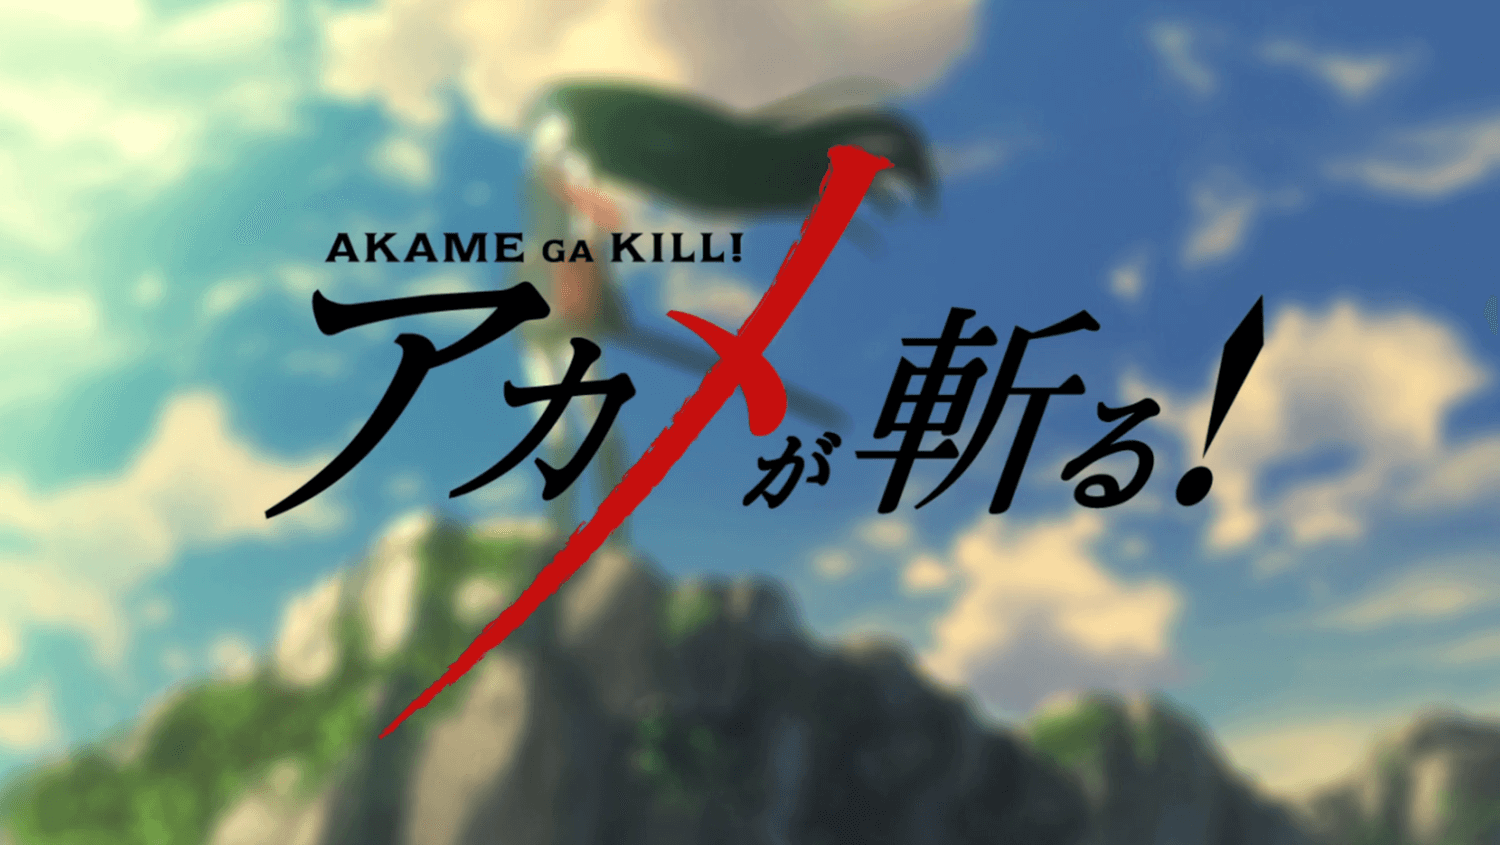 Akame Ga Kill Was Crap